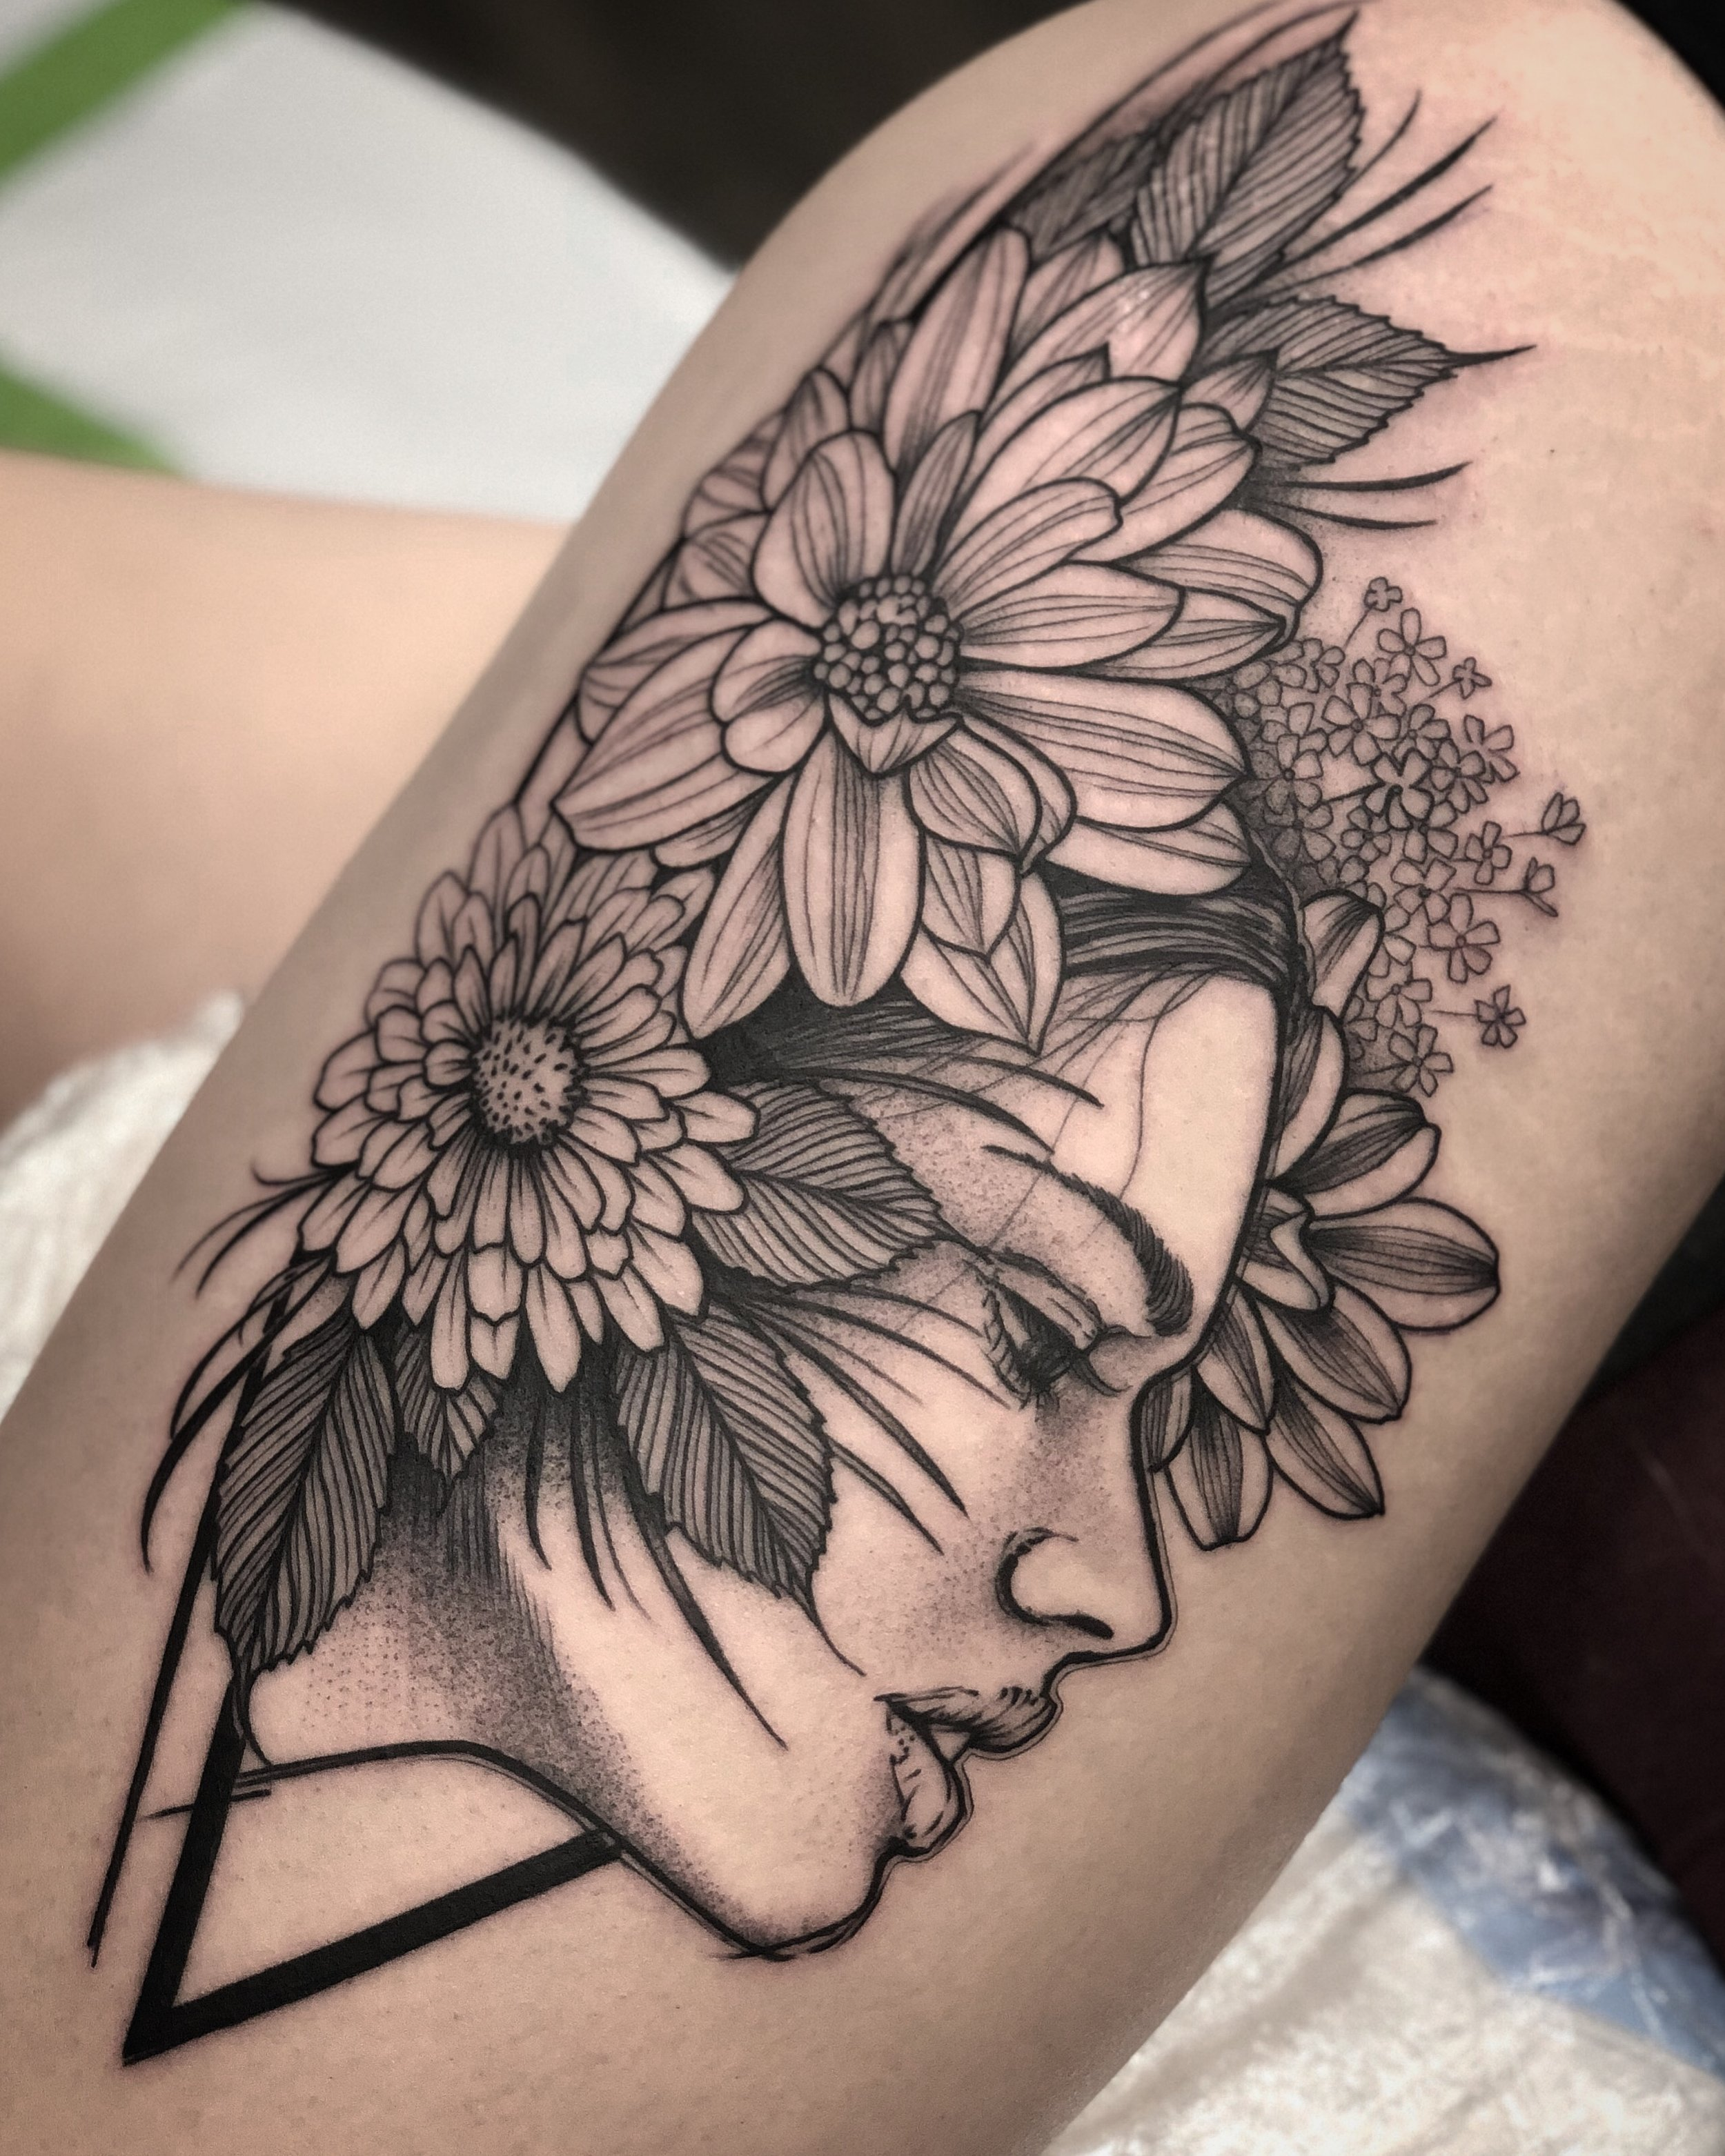 Blackwork Style Portrait and Floral Tattoo by David Mushaney